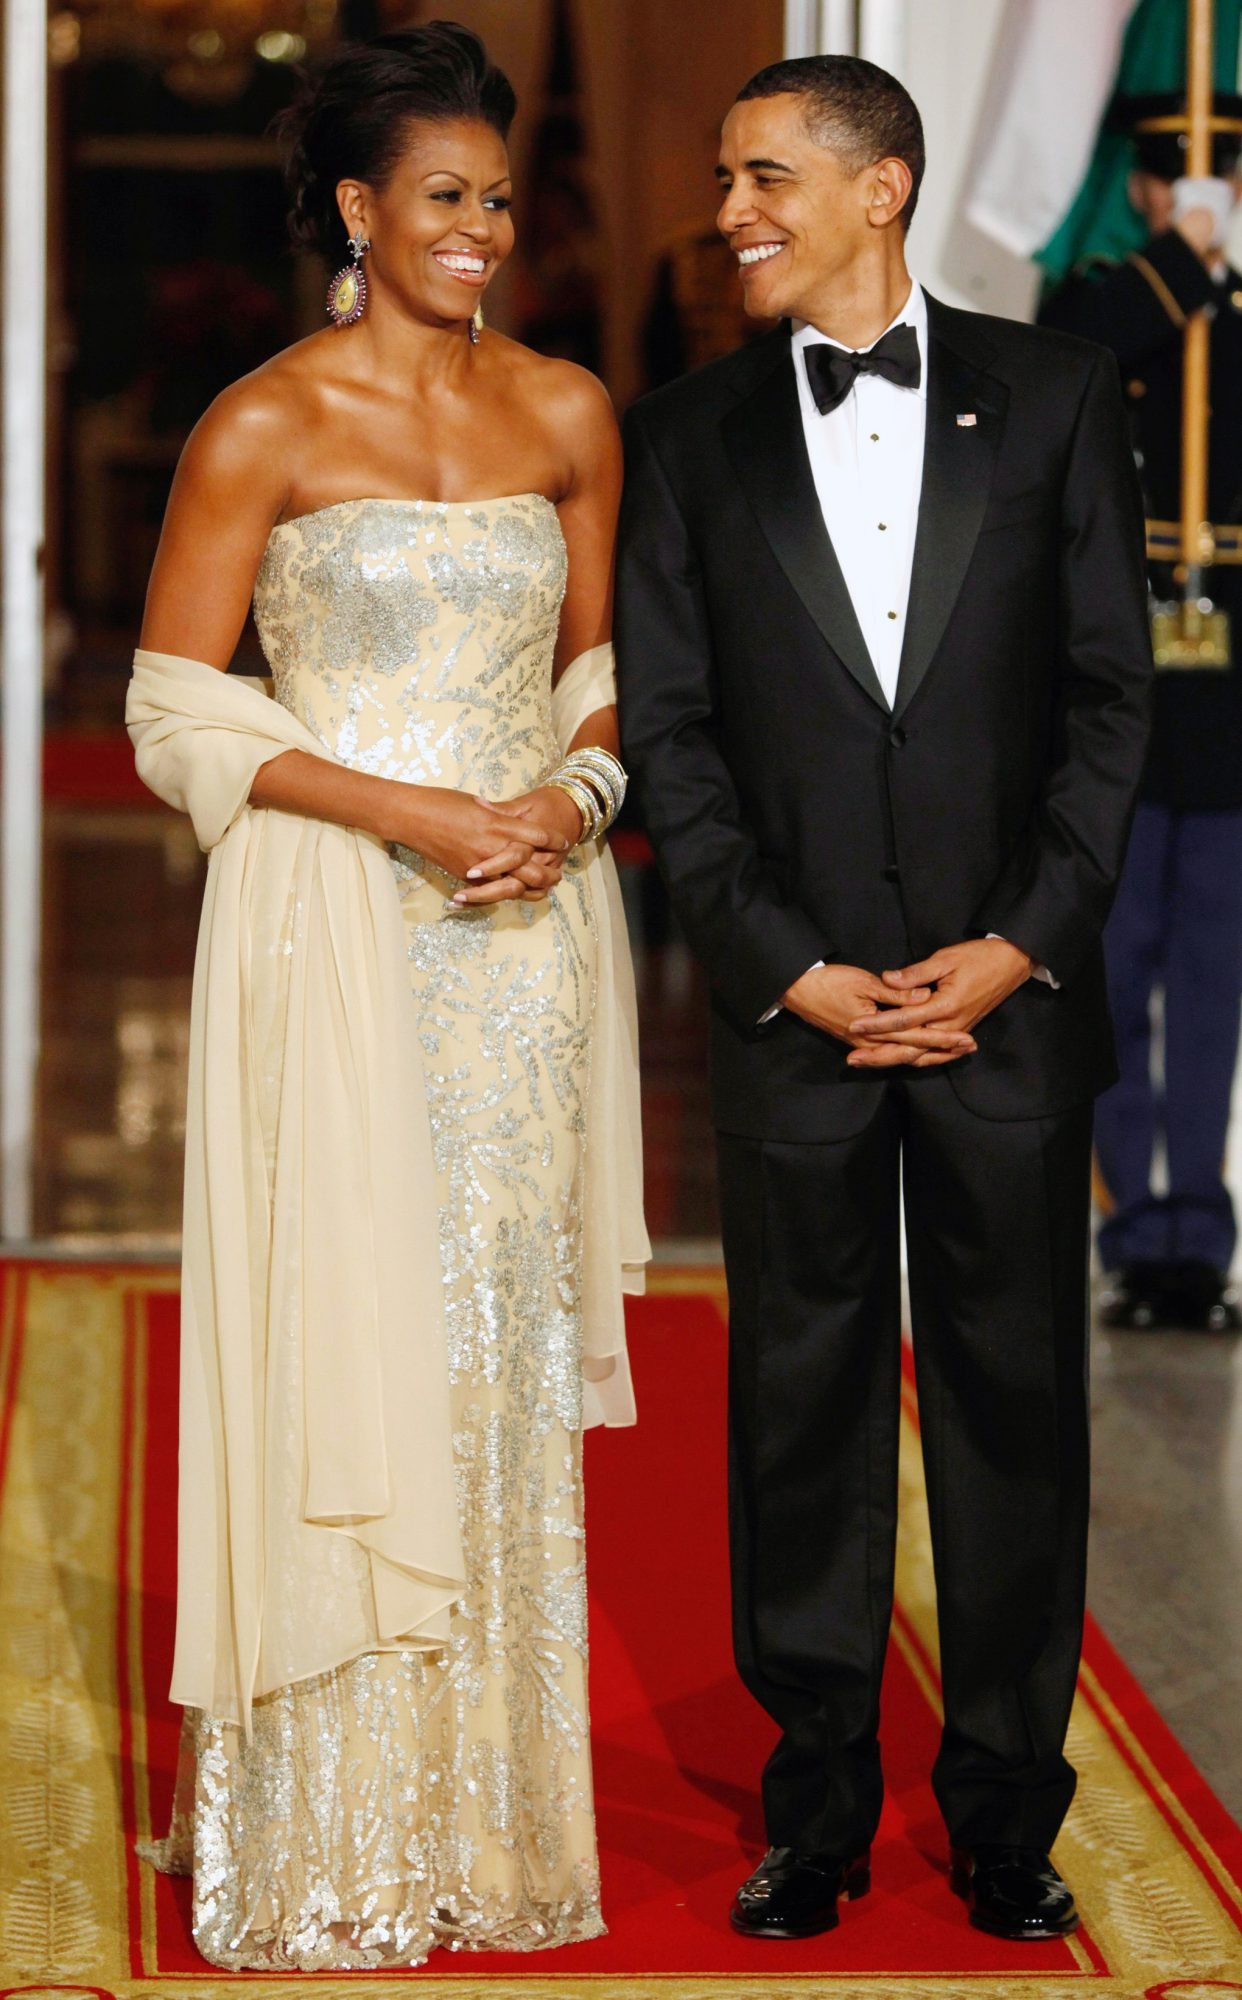 U.S. President Barack Obama and first lady Michelle Obama await arrival of India's PM Manmohan Singh and his wife Gursharan Kaur for state dinner at White House in Washington